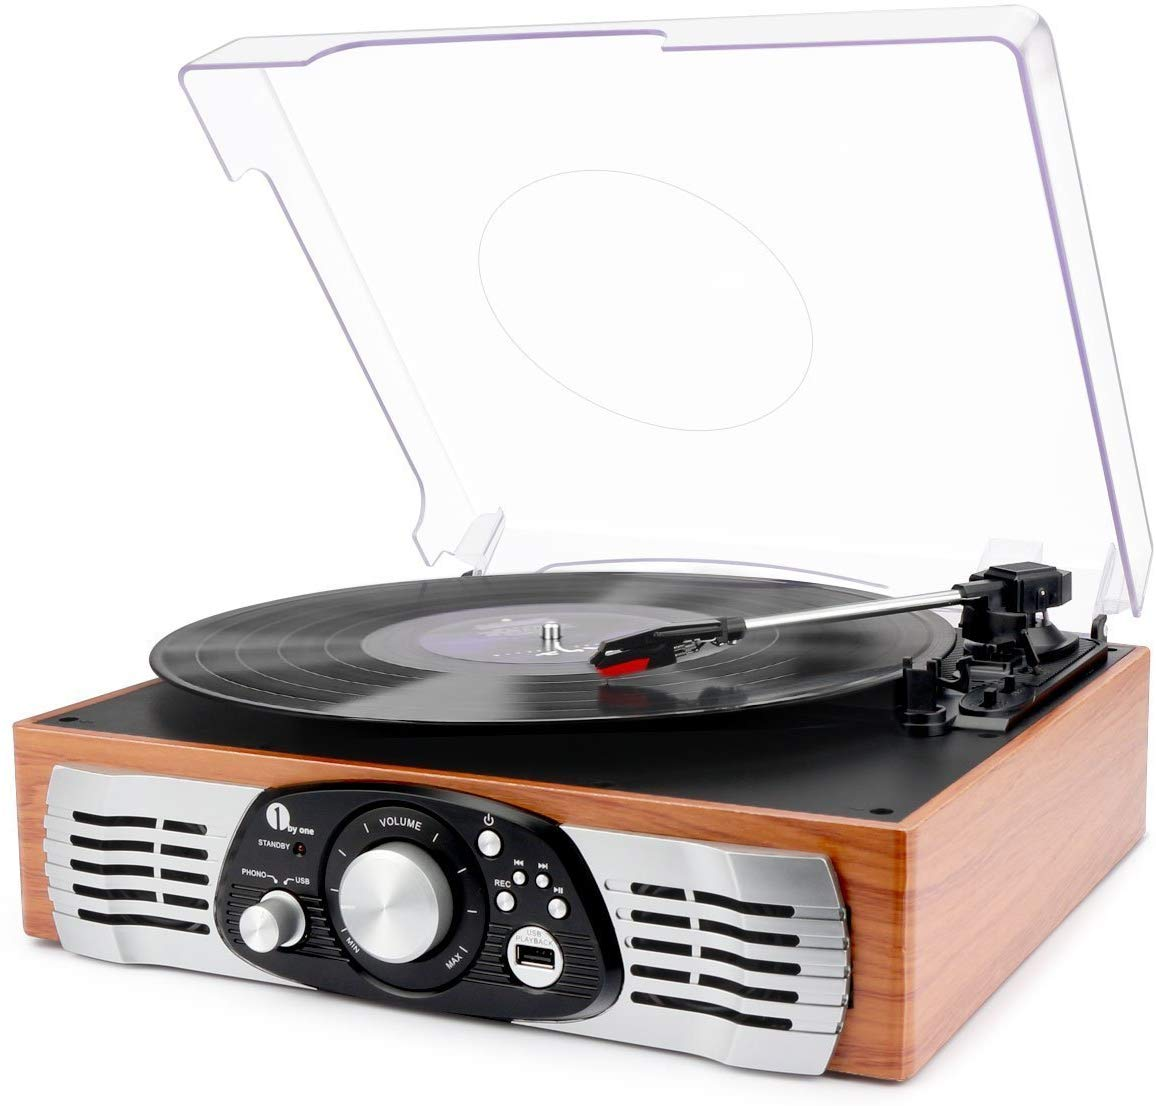 Platine Vinyle 1 BY ONE Tourne Disque Transportable Immitation Bois